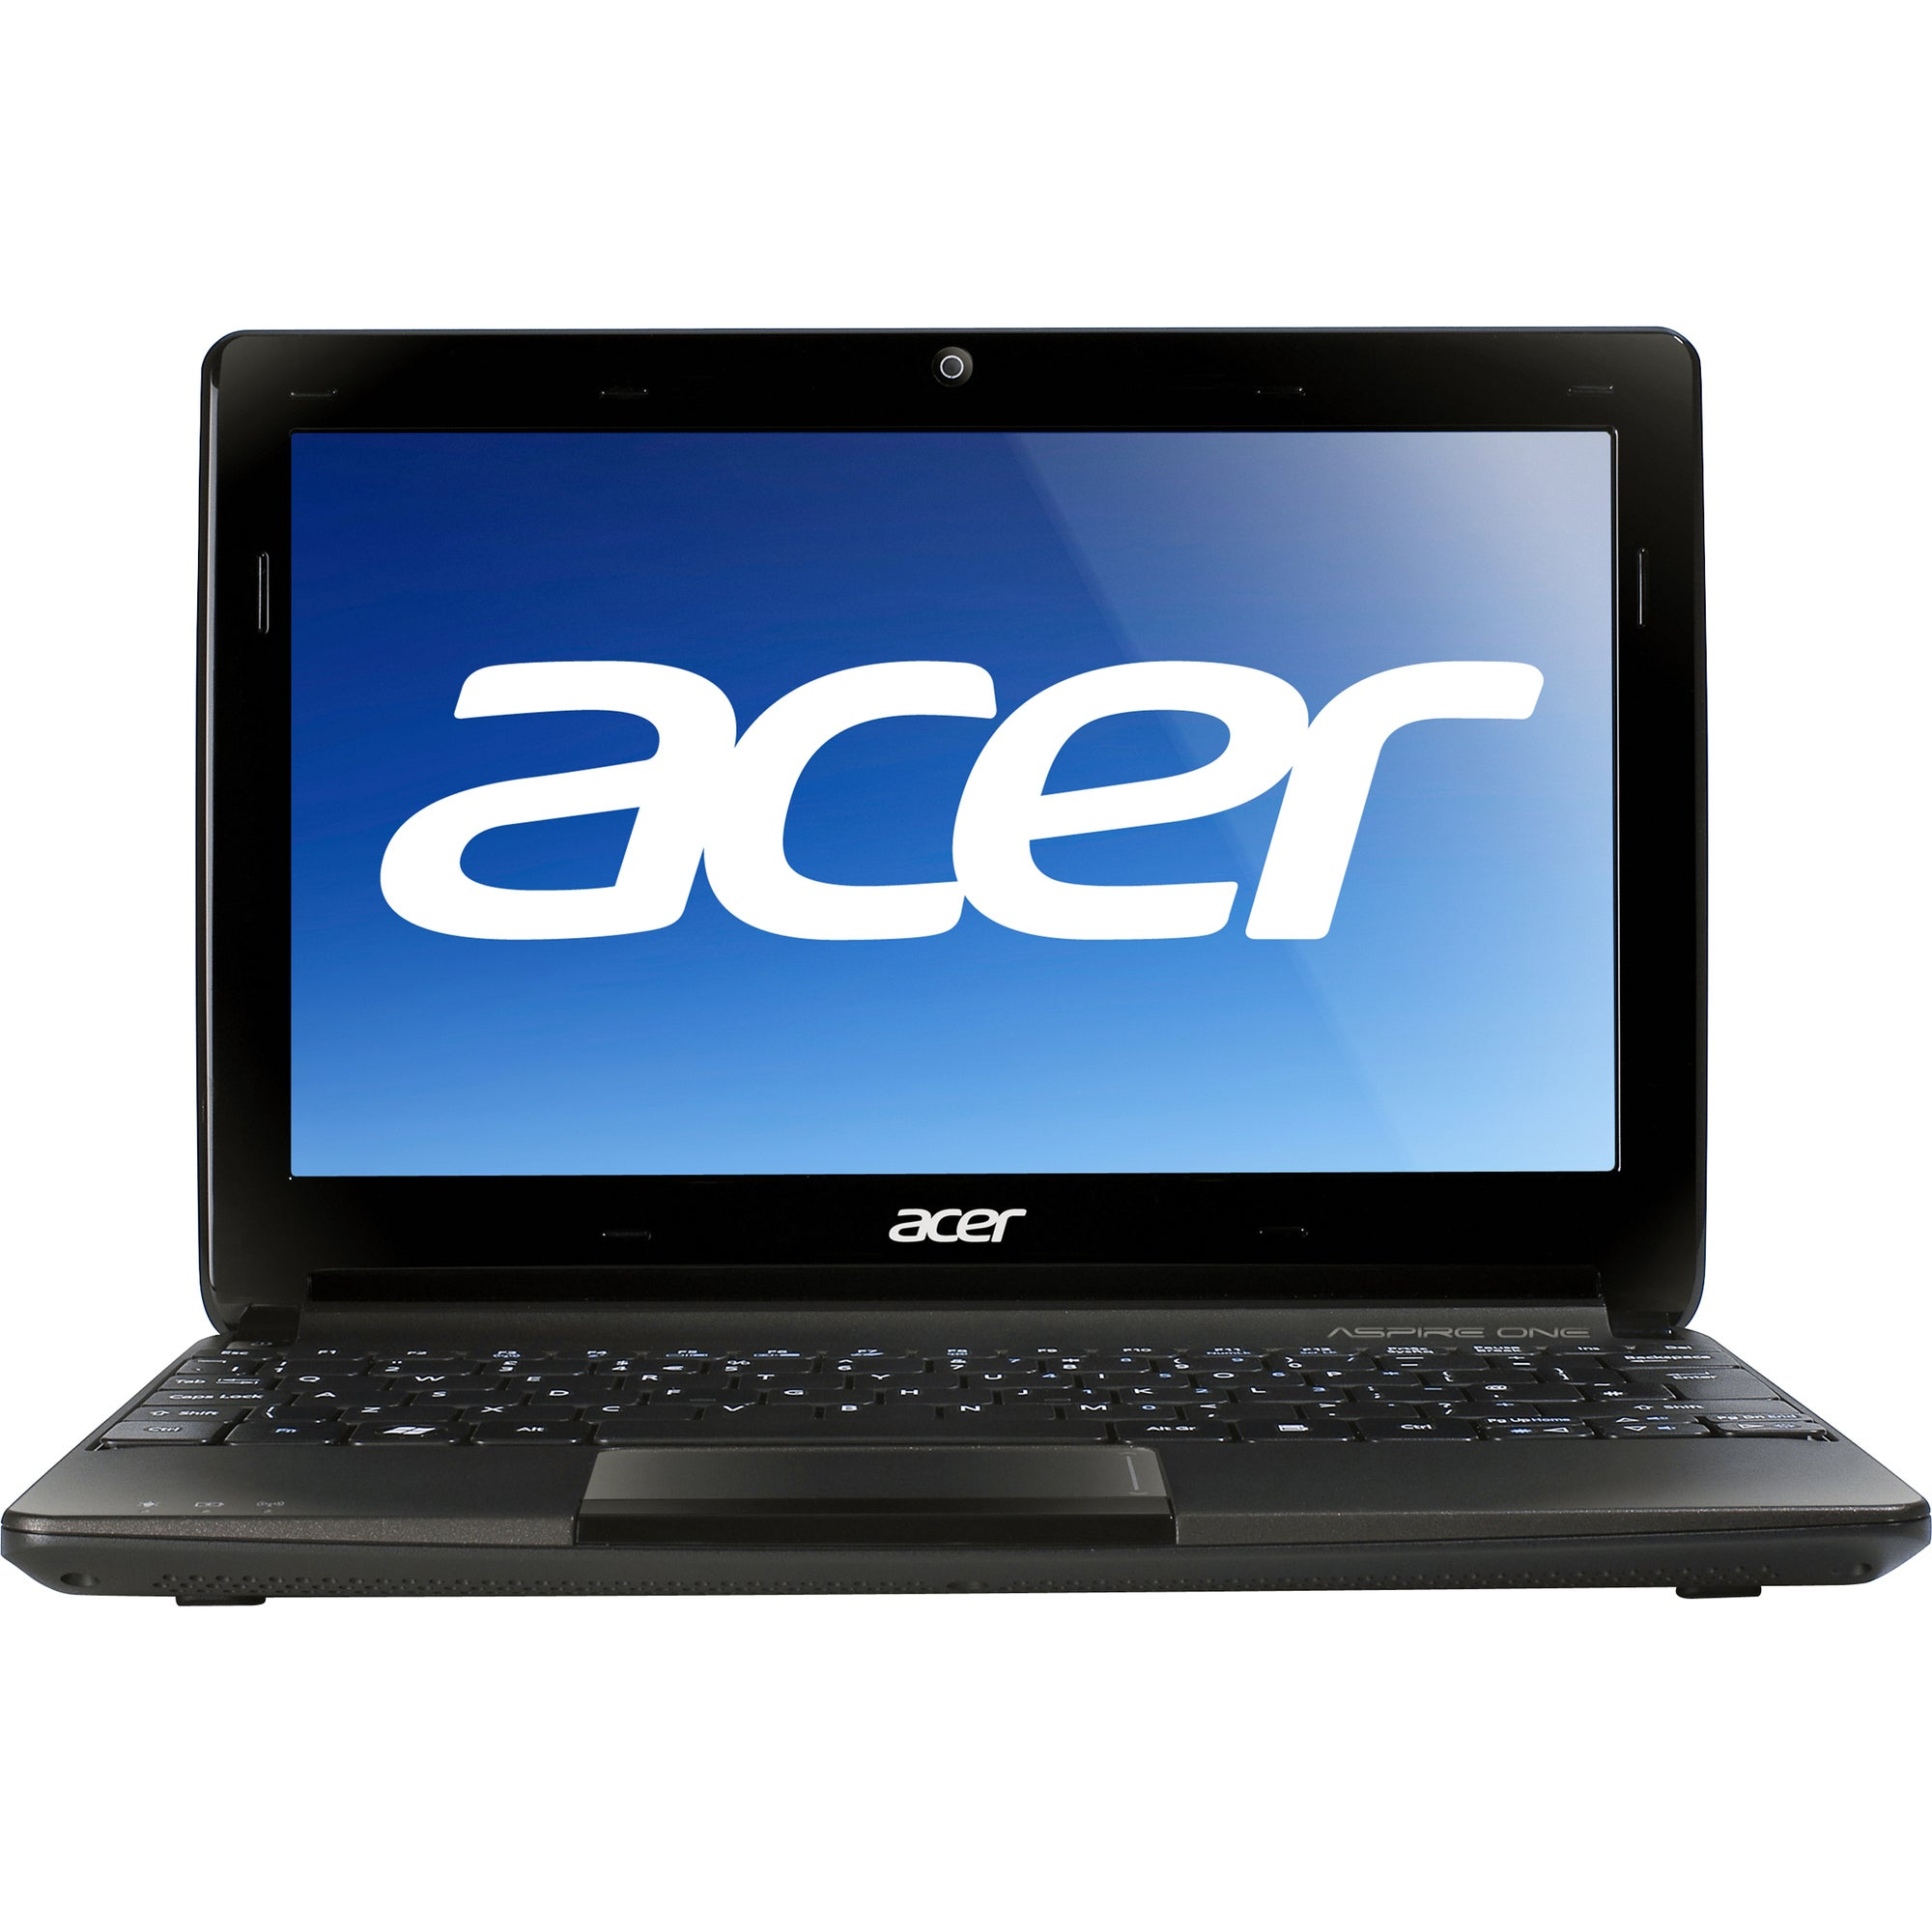 "Acer Aspire One D270 AOD270-26Dkk 10.1"" LCD 128:75 Netbook - 1024 x 6"